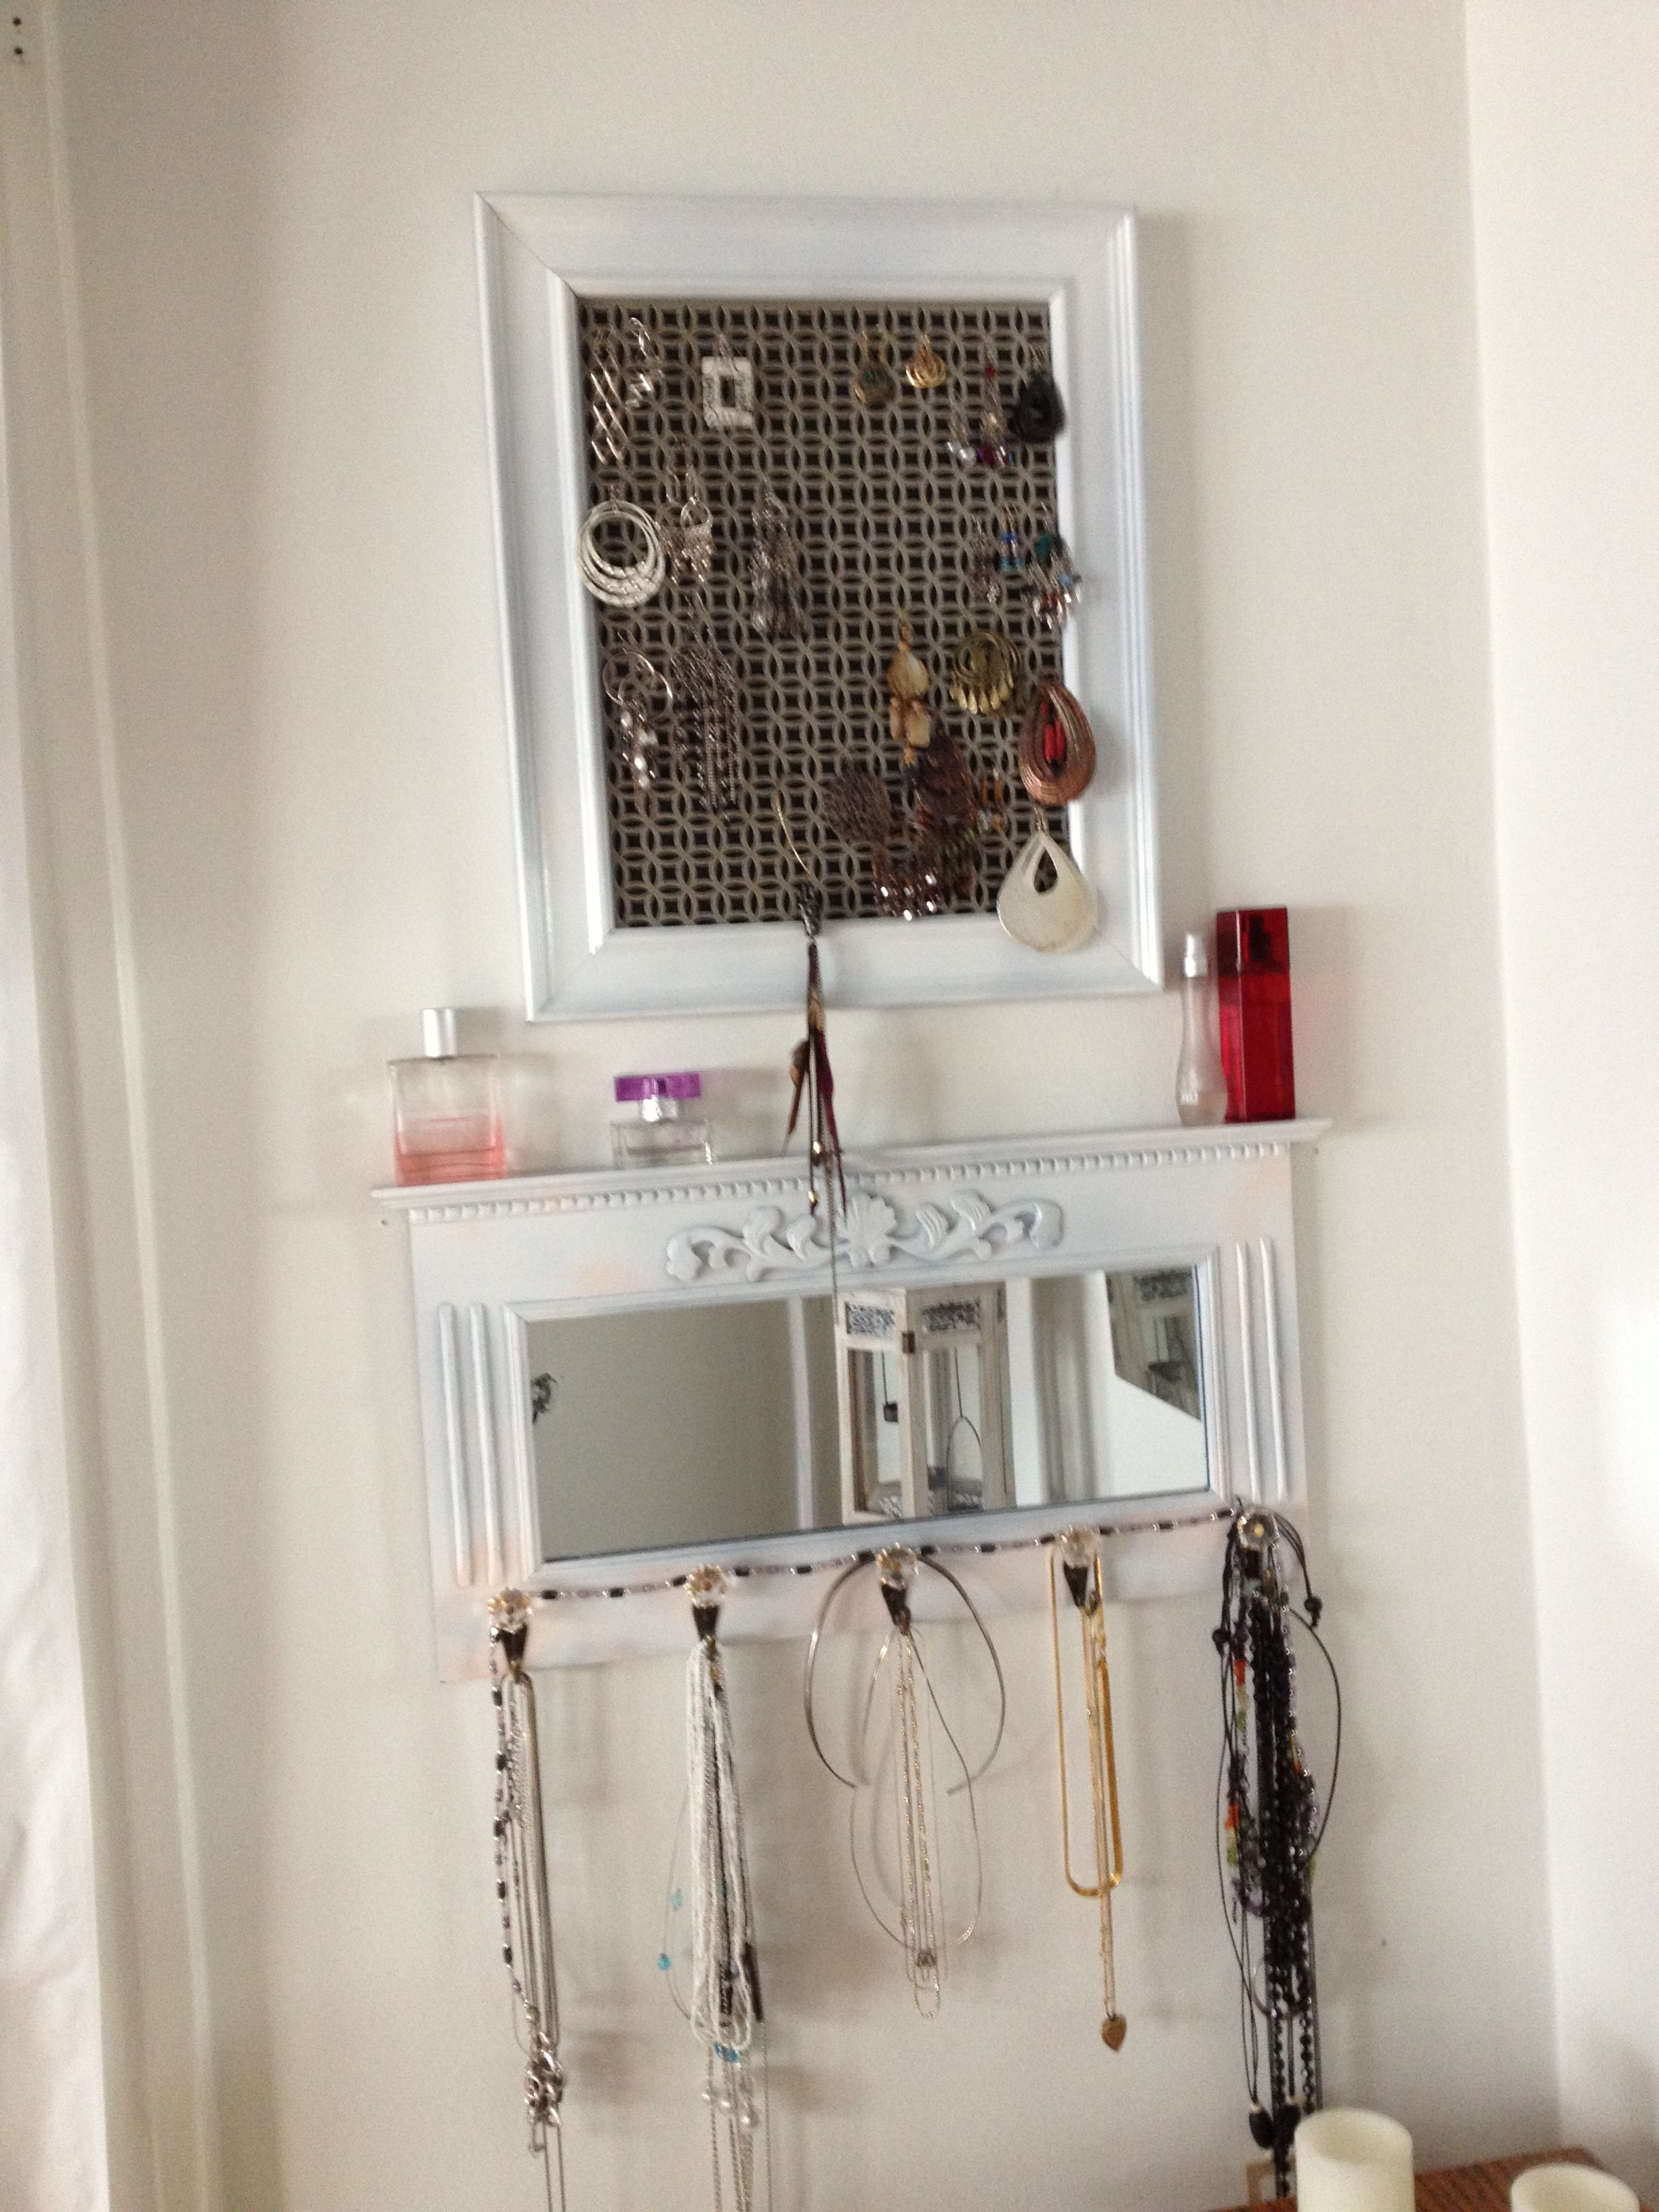 I Finally Organized My Jewelry Wire Mesh From Home Depot In A